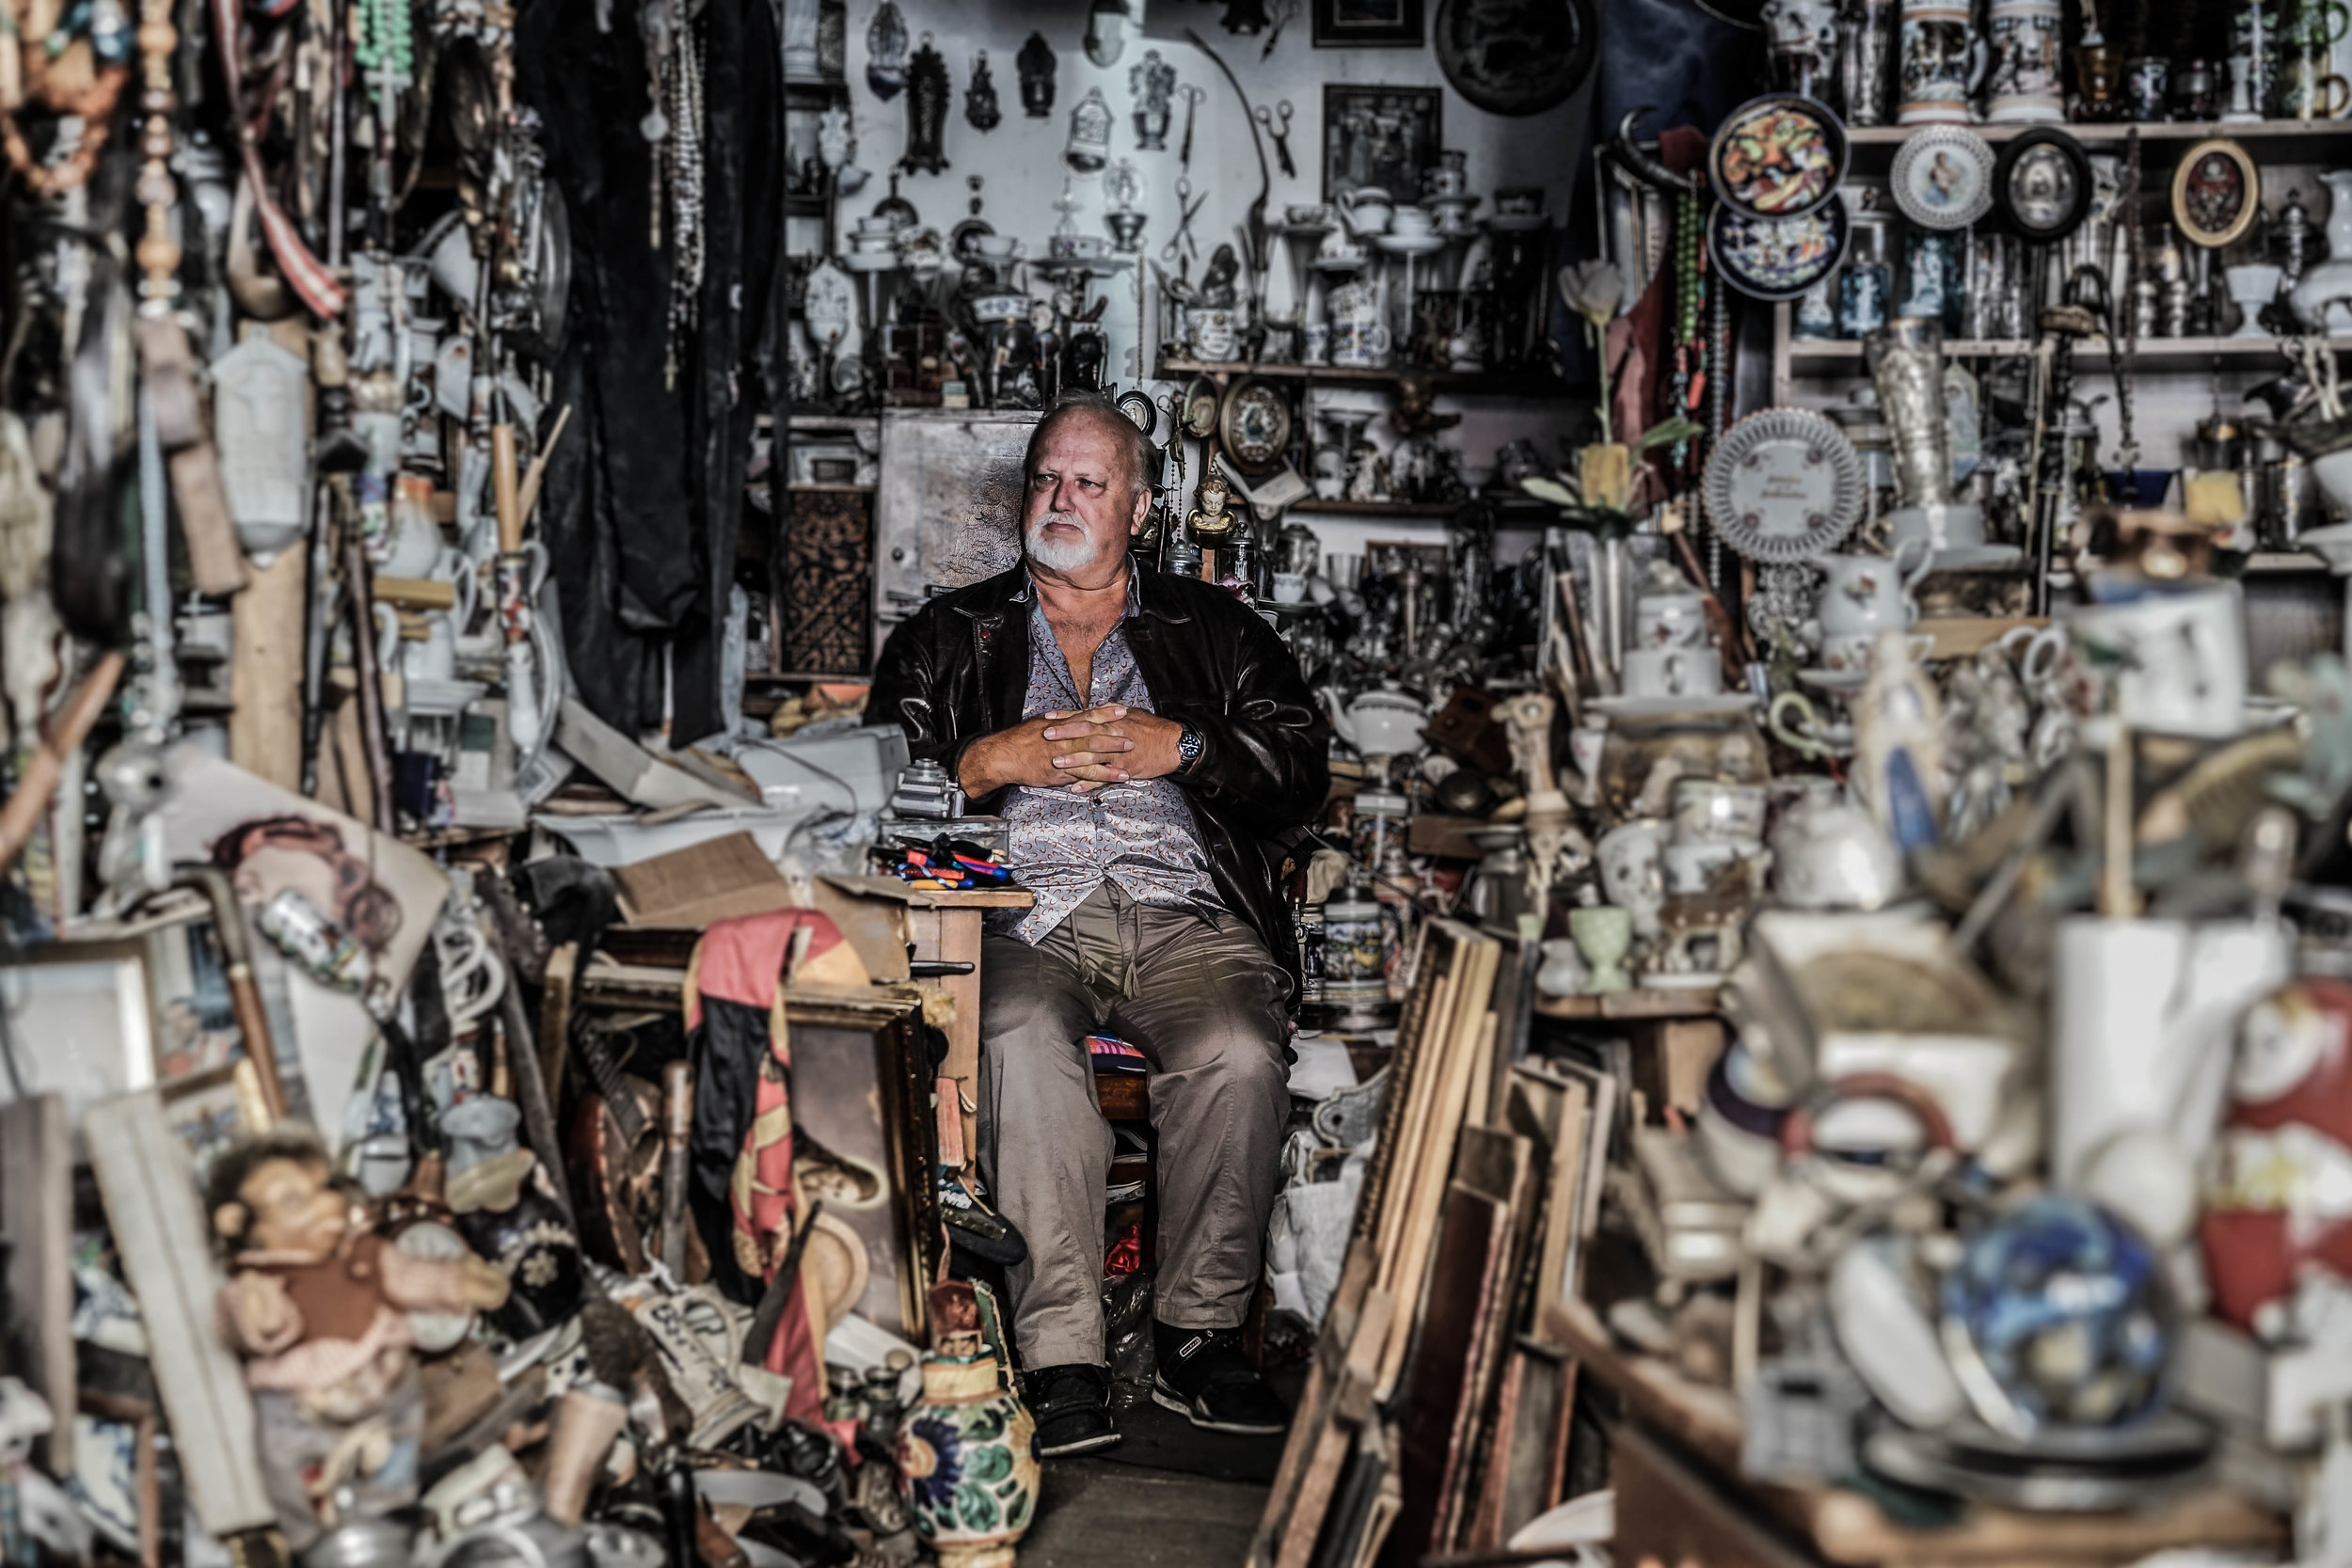 A Man in the Antiquities Store